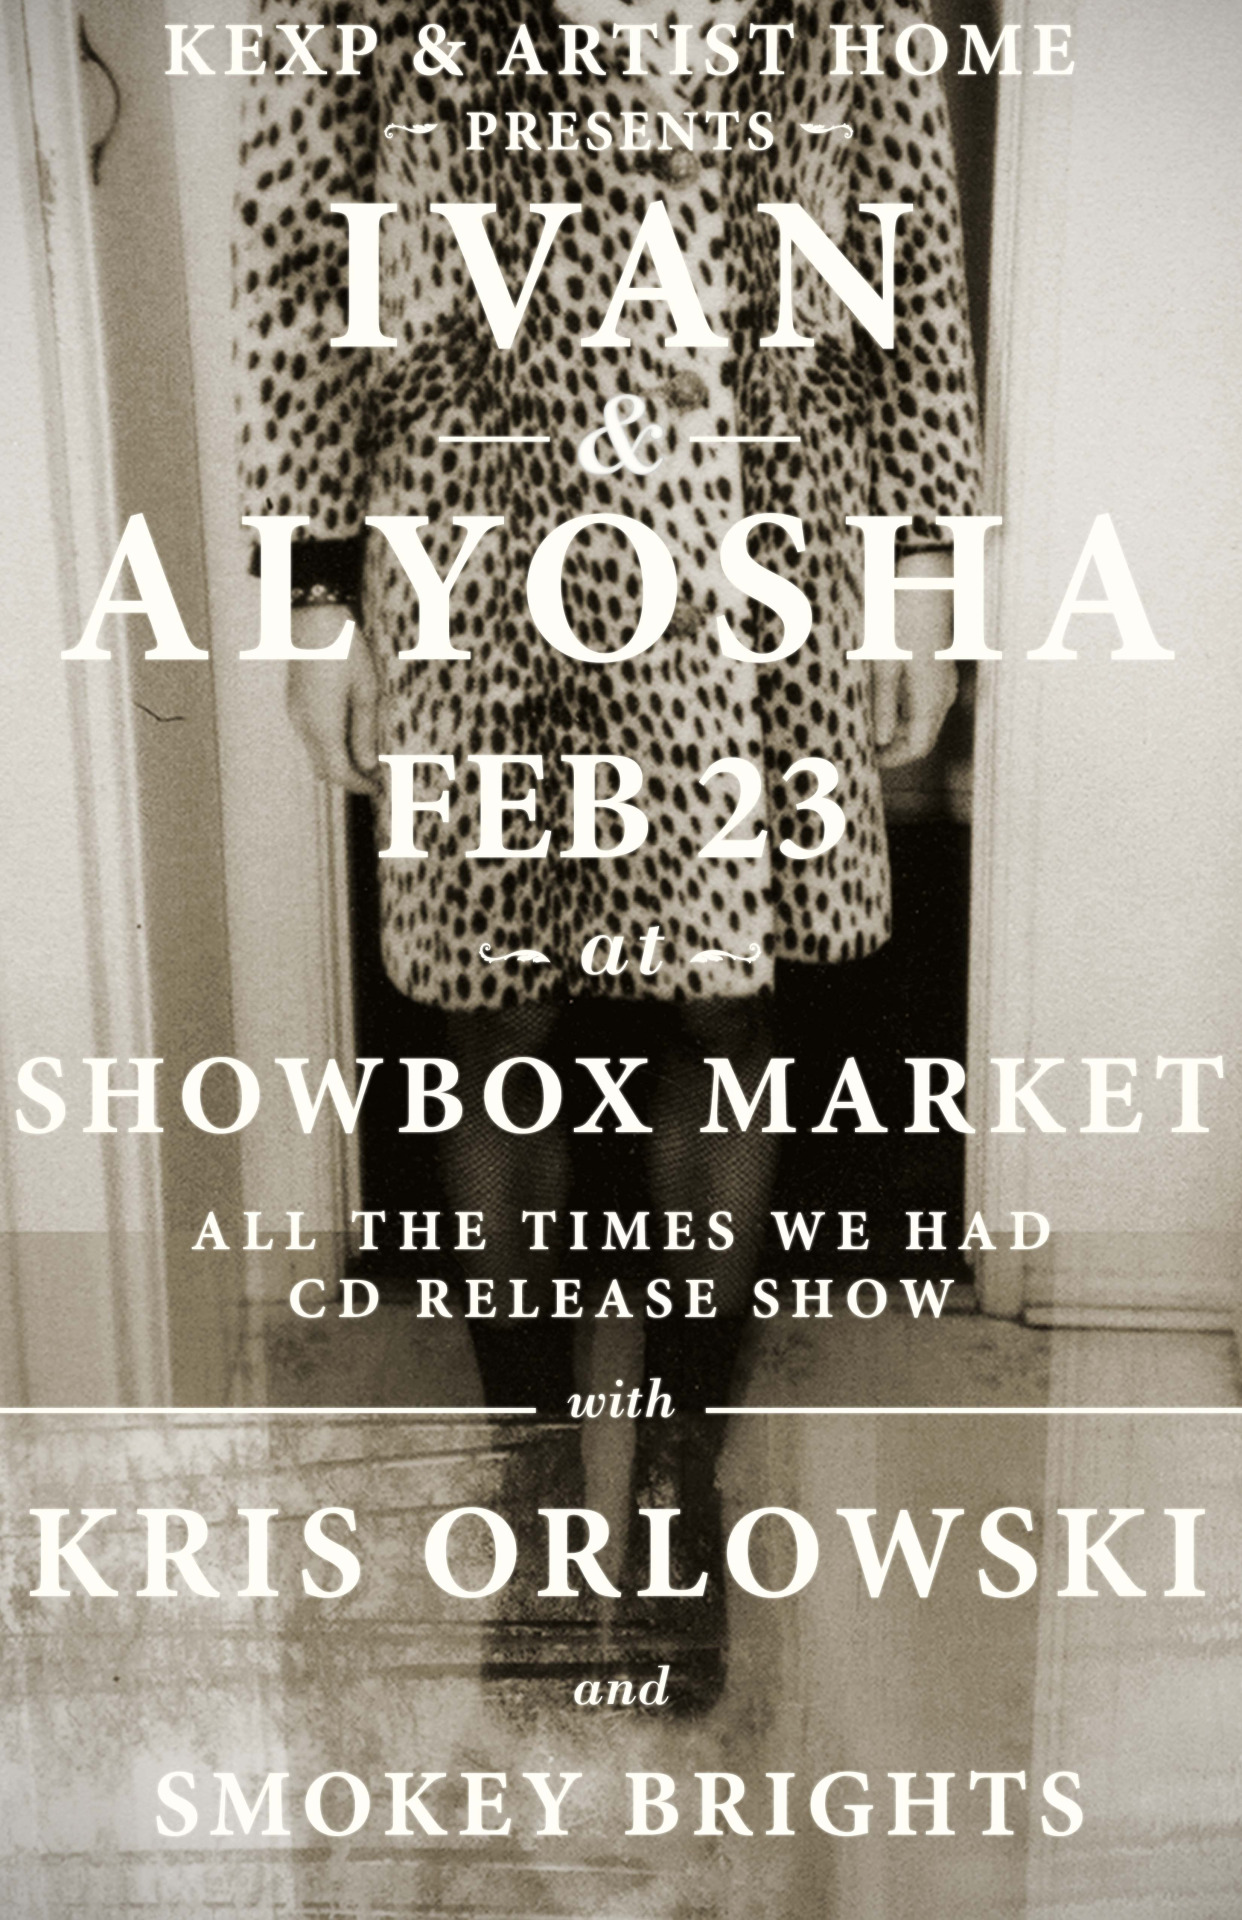 """Seattle!      KEXP and Artist Home Present Ivan & Alyosha's Album Release Show w/ Kris Orlowski, Smokey Brights, & Passenger String Quartet!!! Show is February 23rd at Showbox Market and is All Ages!!!    Online Pre-Sale goes up THURSDAY (today) at 10!!! (Password is kexp or Showbox)    Presale Link -  http://bit.ly/IvanAlyShowbx     Help us spread the word!     Can't wait for our debut full length """"All The Times We Had"""" on MIssing Piece / Dualtone Records to come out Tuesday, February 26th!!!  It's been a long time coming, appreciate all of you who have stuck with us and continue to support and inspire what we do.    I&A"""